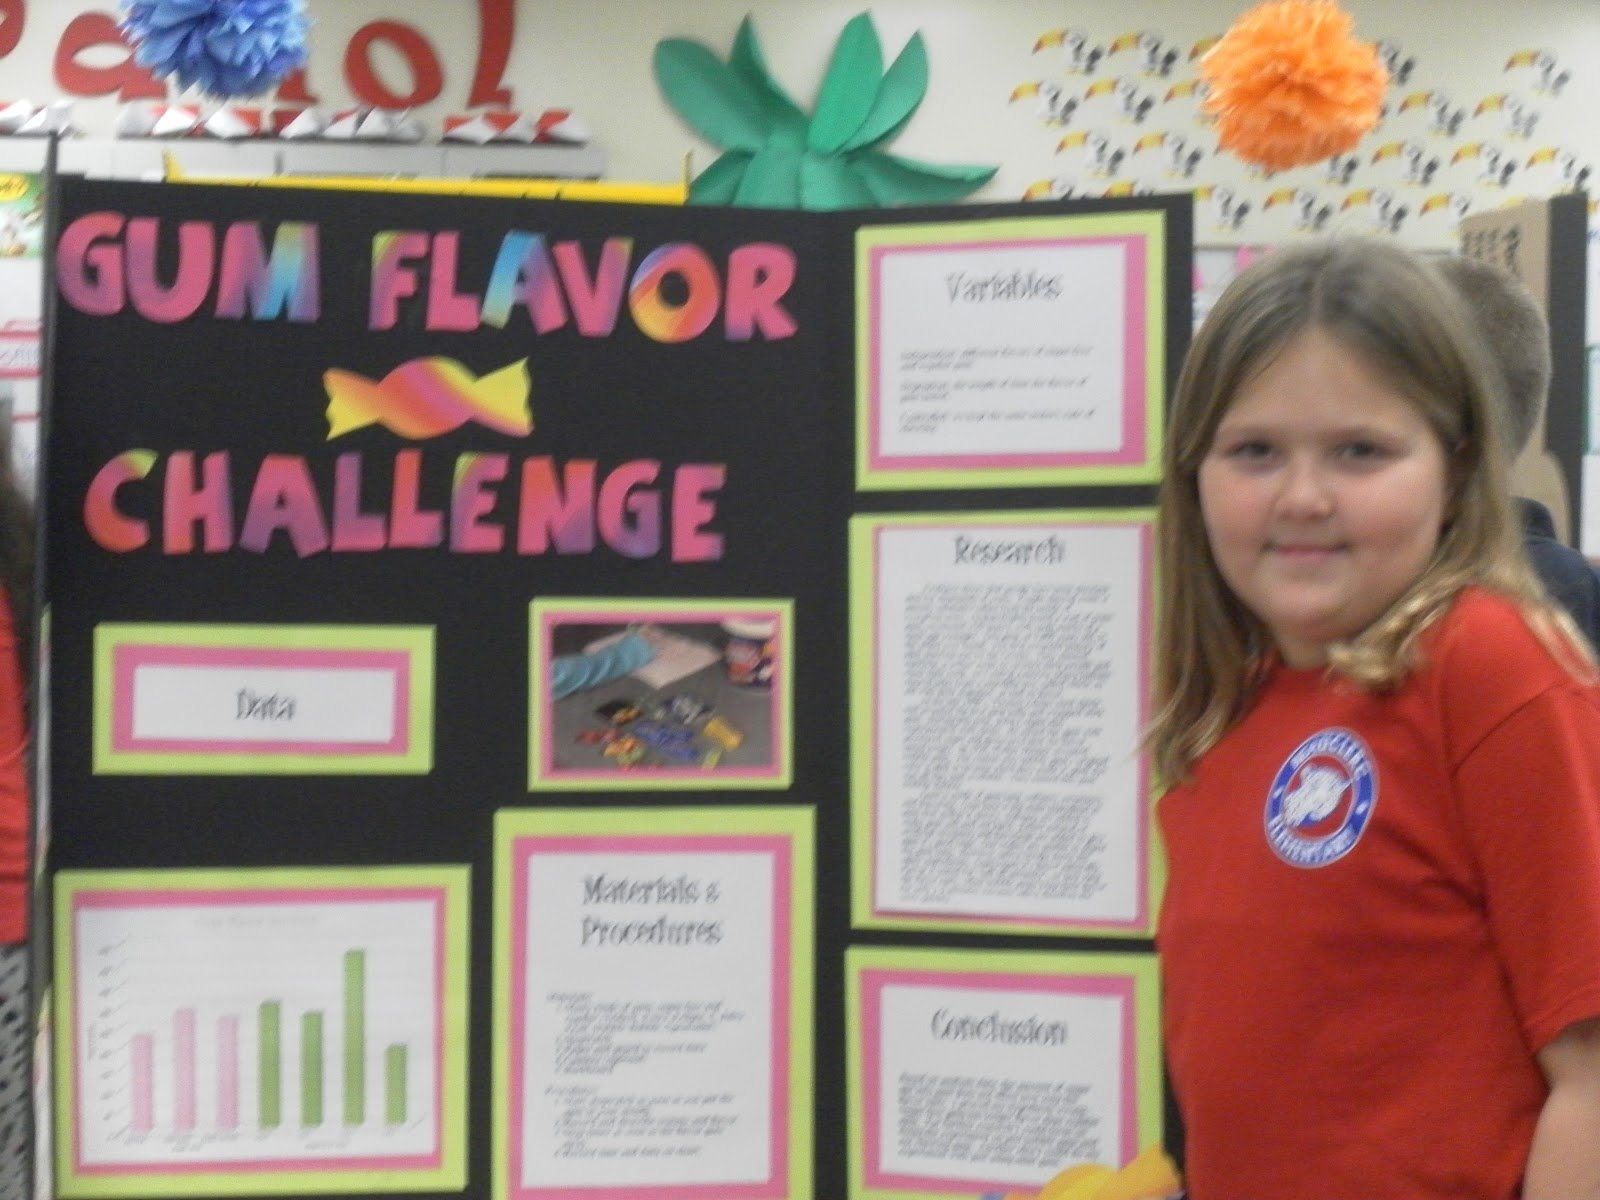 10 Most Popular Ideas For Science Fair Projects For 4Th Graders cool science fair projects for 4th graders college paper writing 3 2020